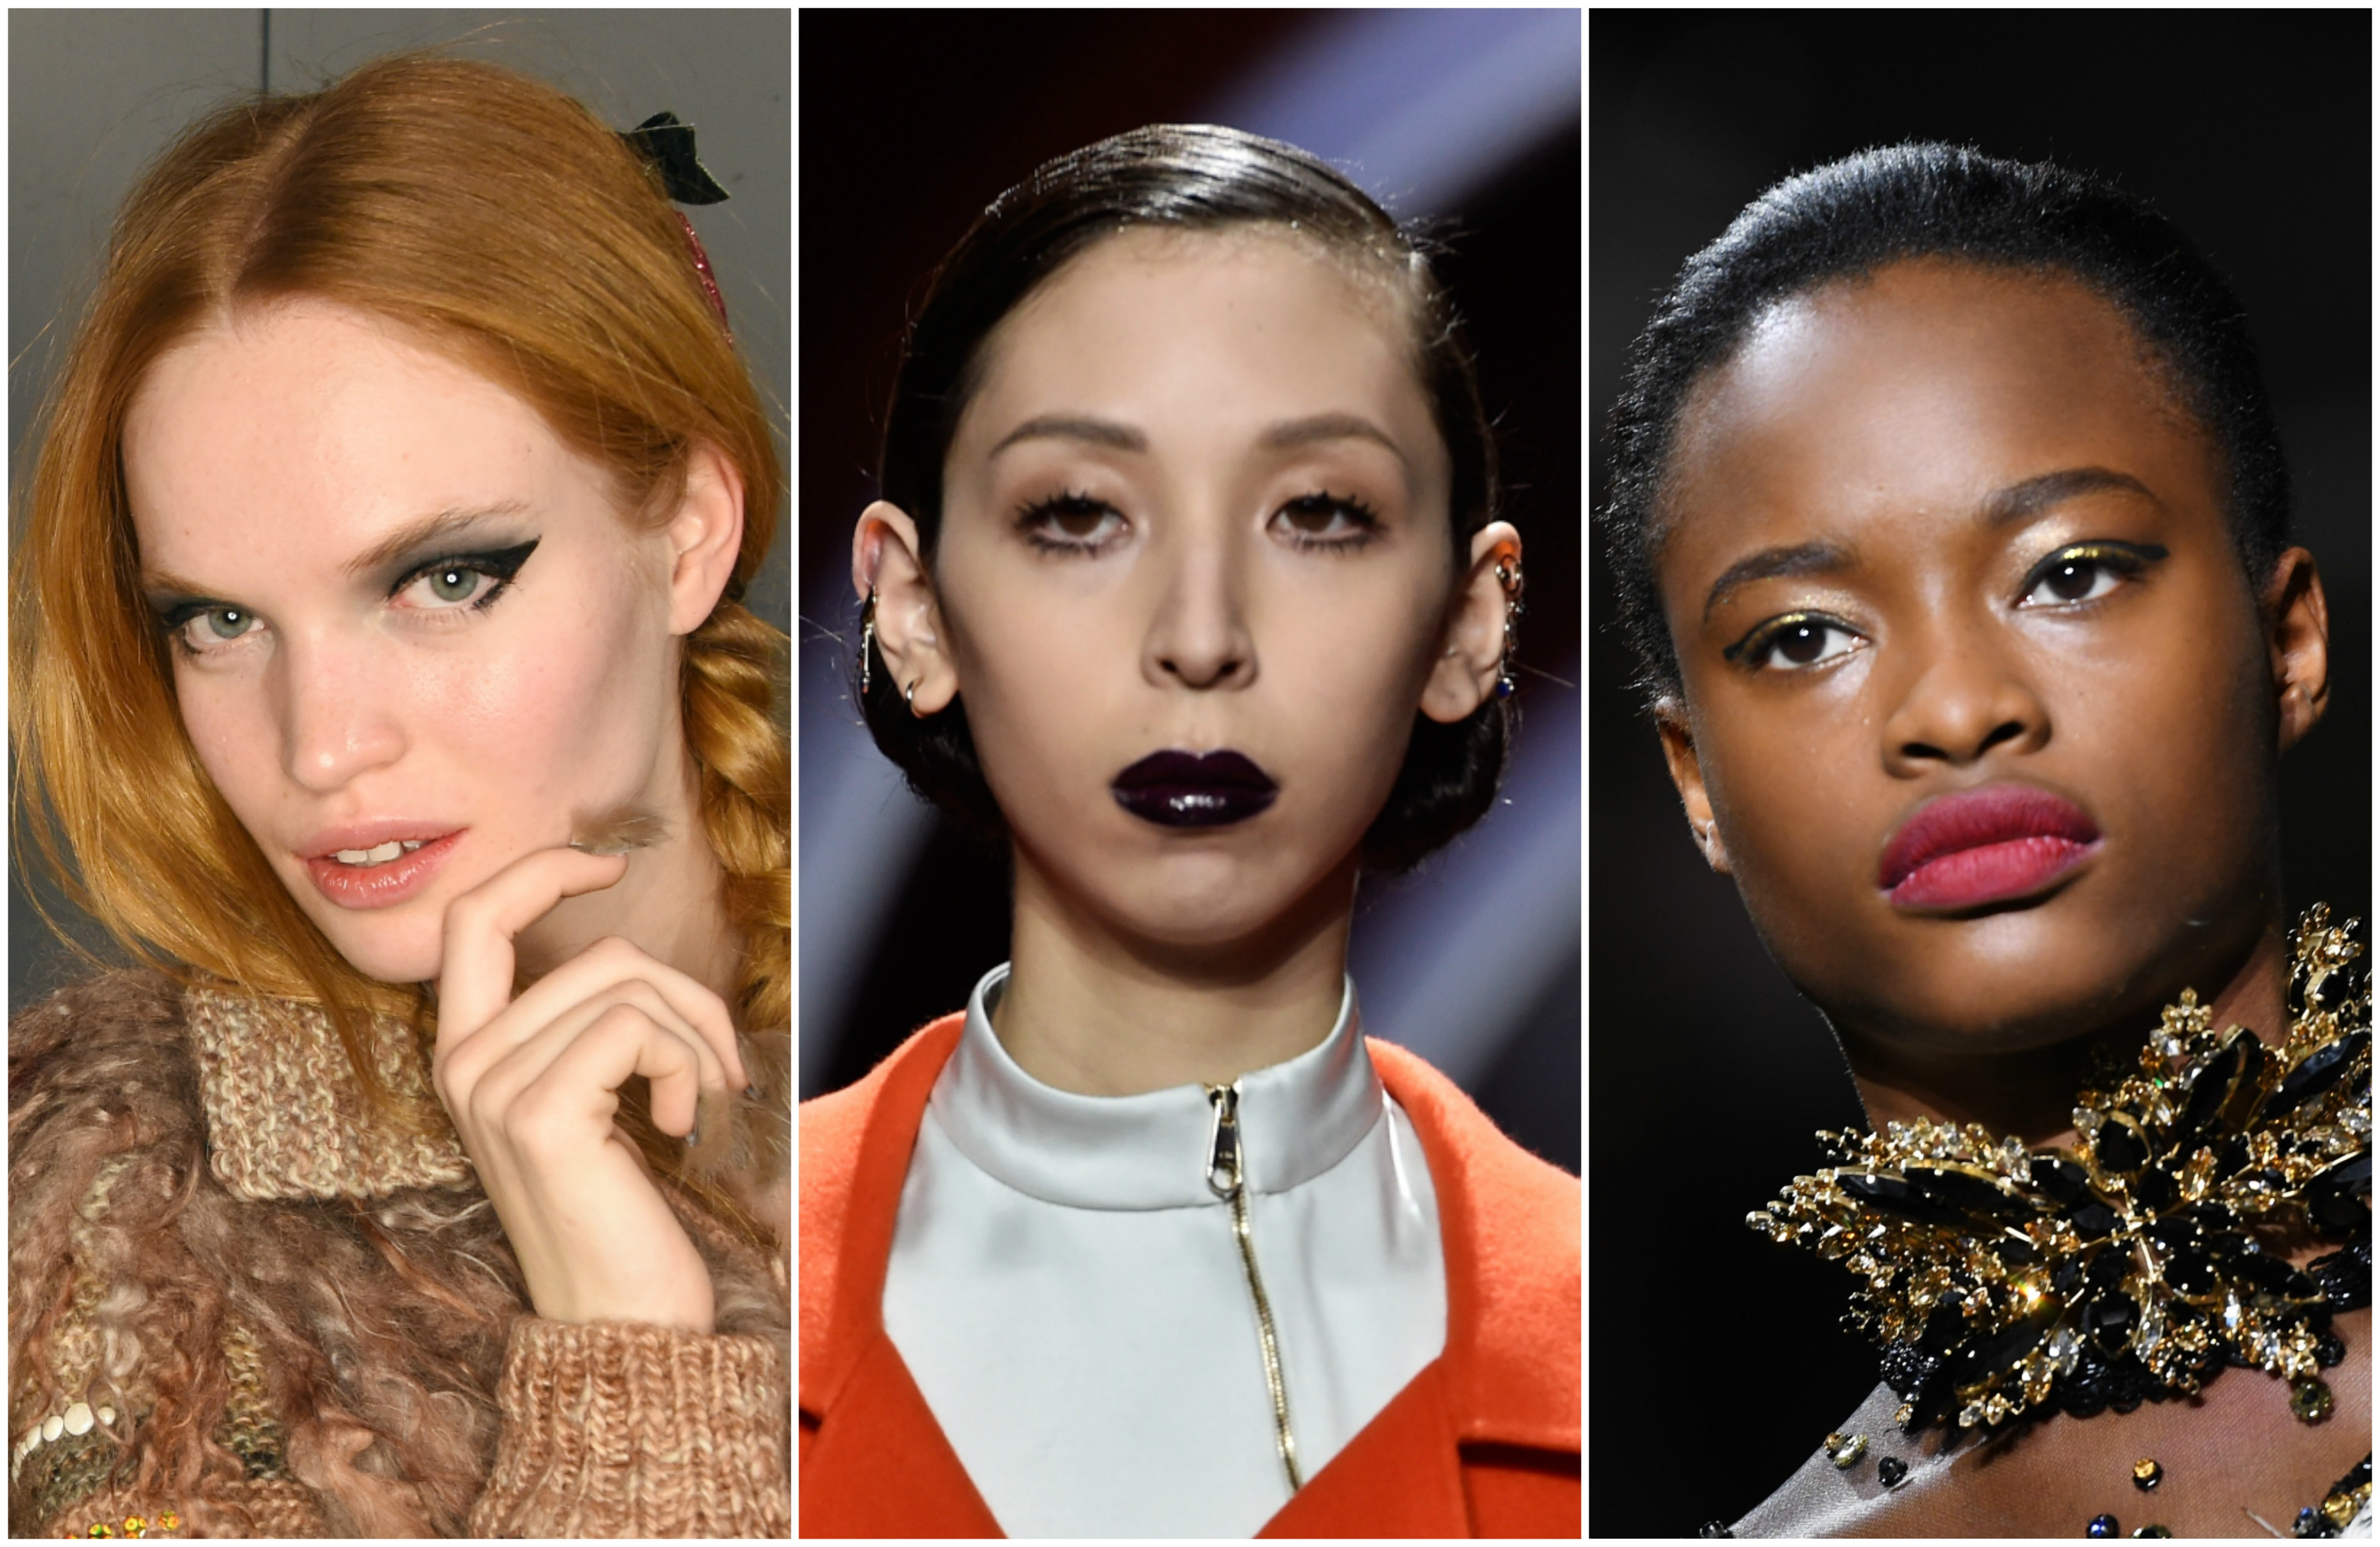 Runway models wearing fall makeup trends